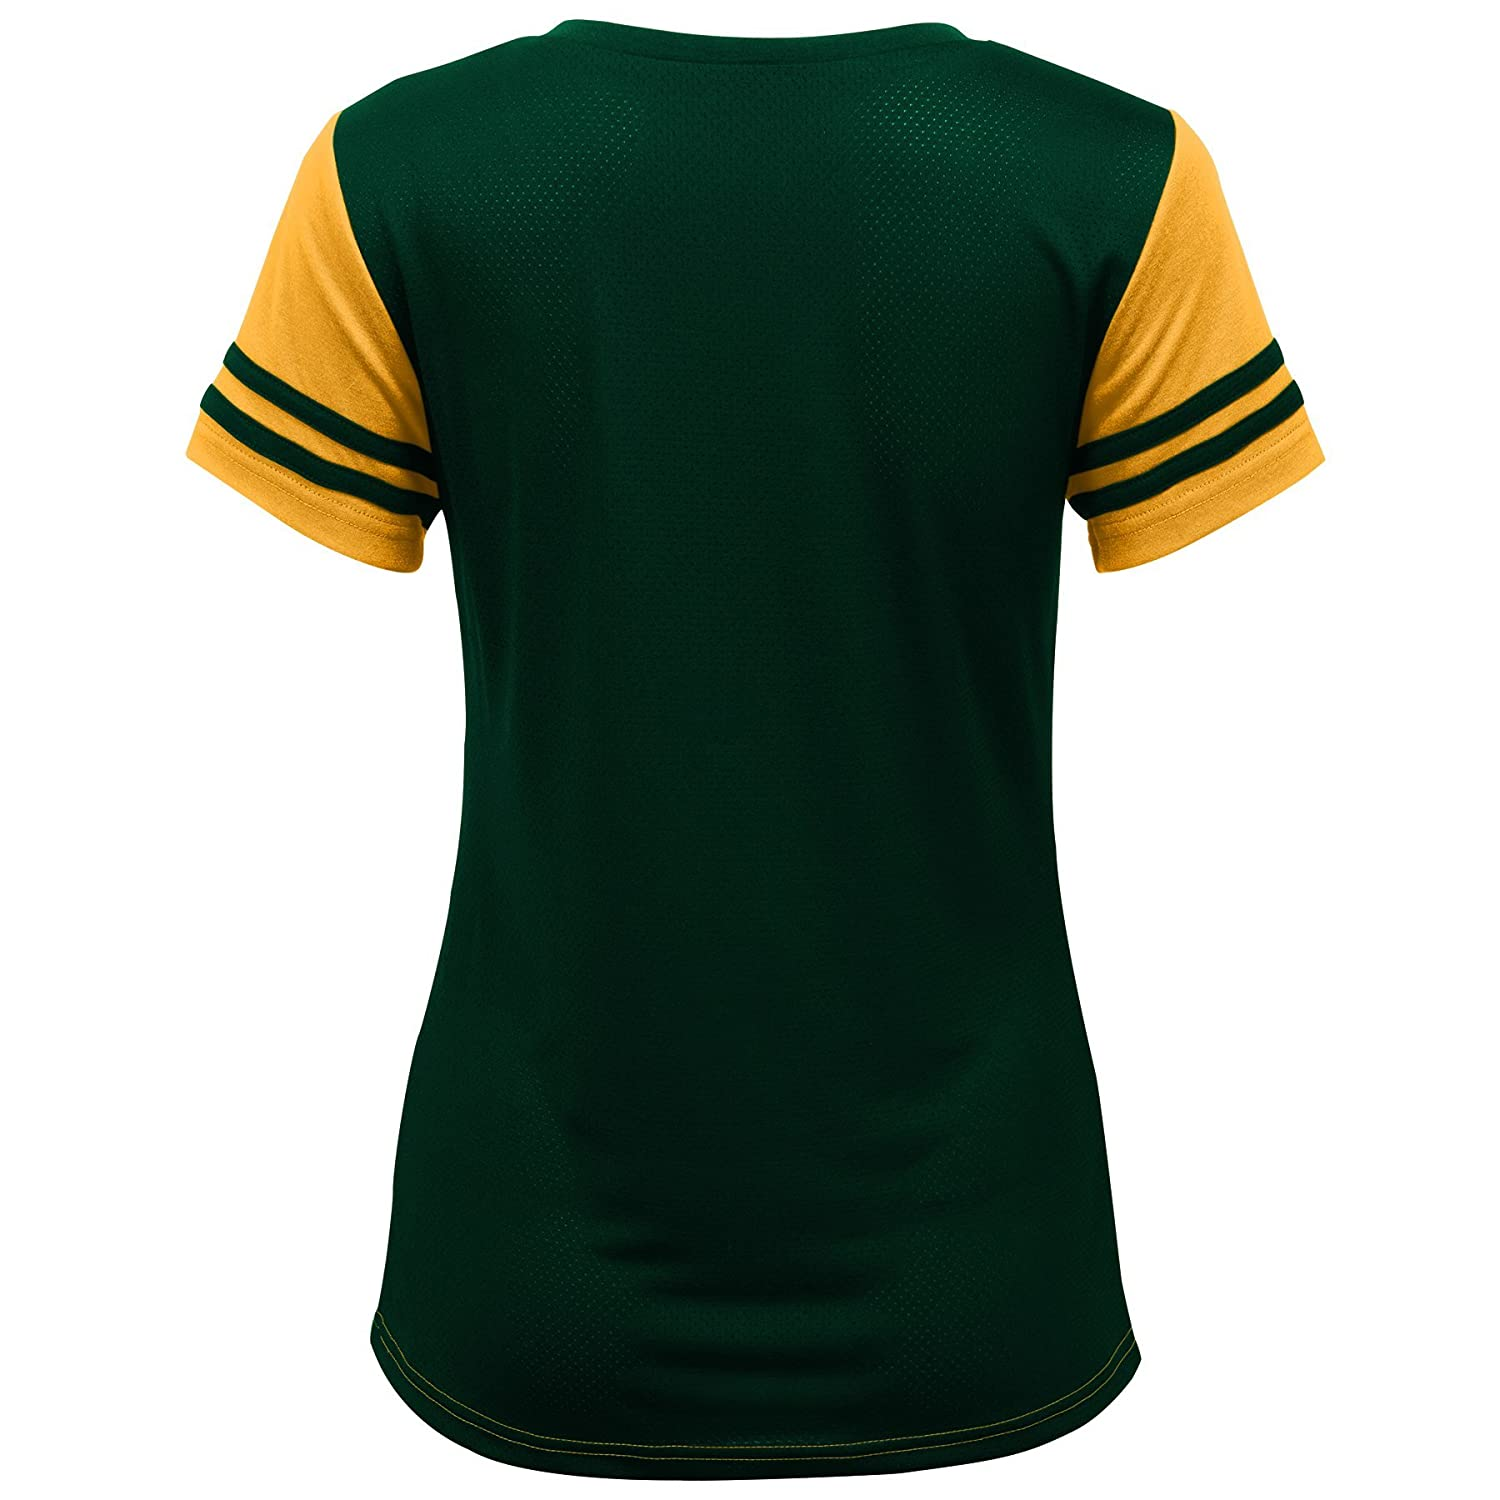 Youth Medium Outerstuff NFL NFL Green Bay Packers Youth Girls Sound Wave Short Sleeve Tee Gold 10-12